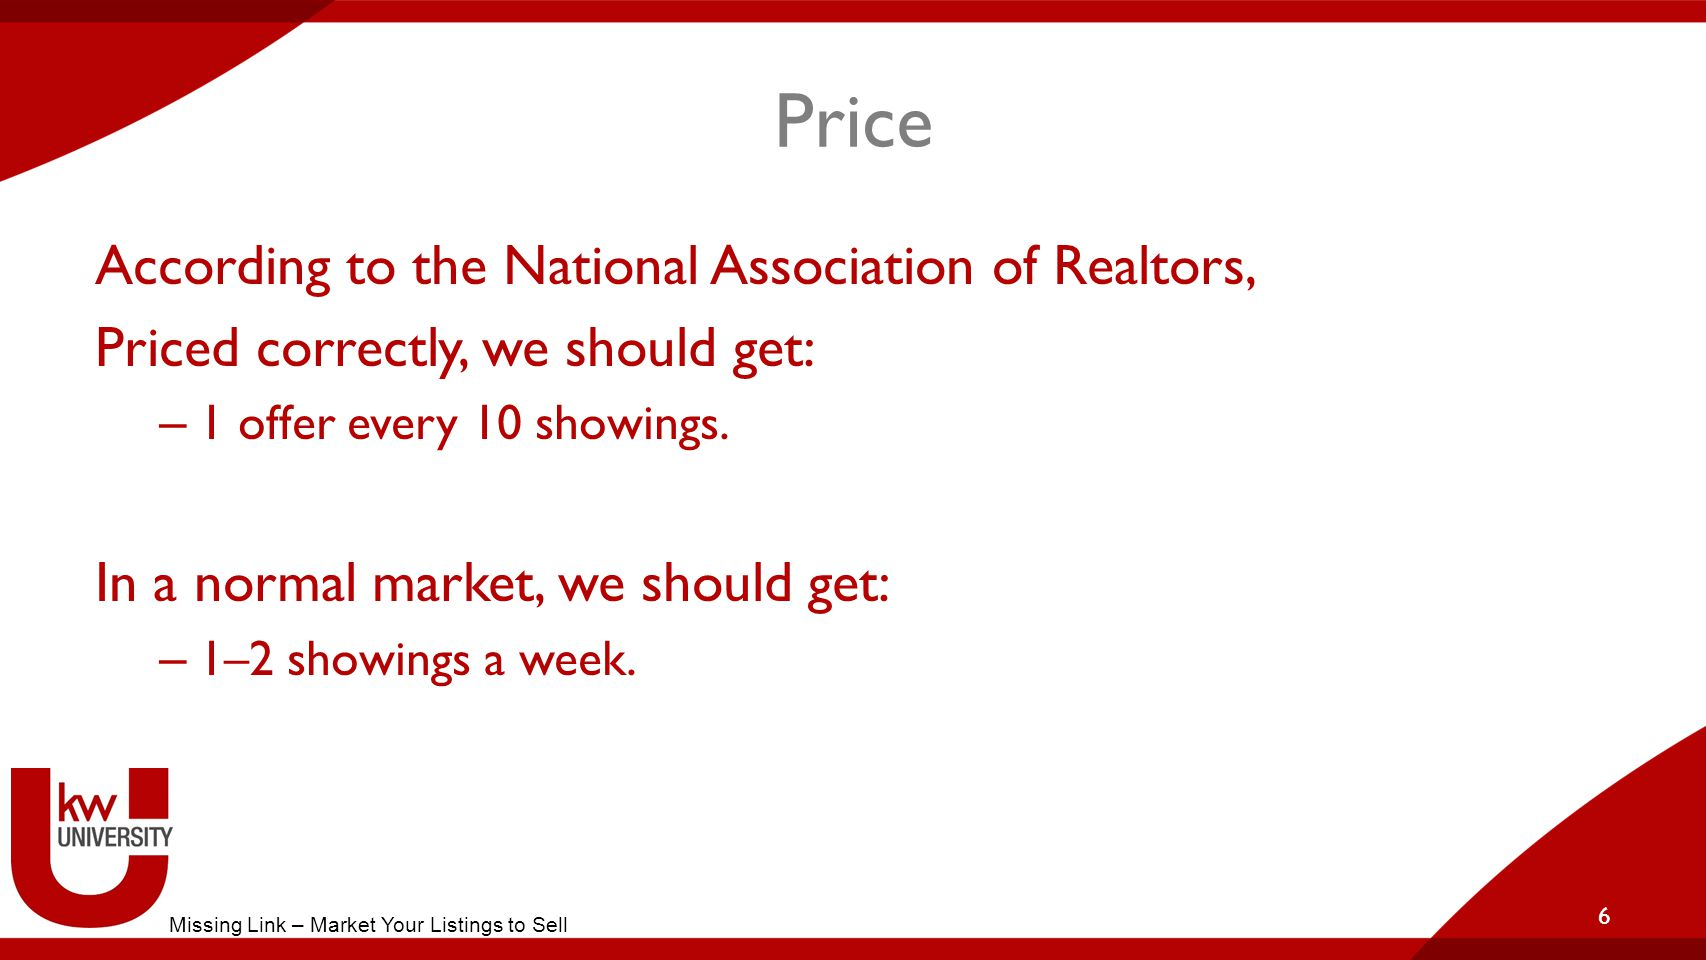 Price According to the National Association of Realtors, Priced correctly, we should get: – 1 offer every 10 showings.